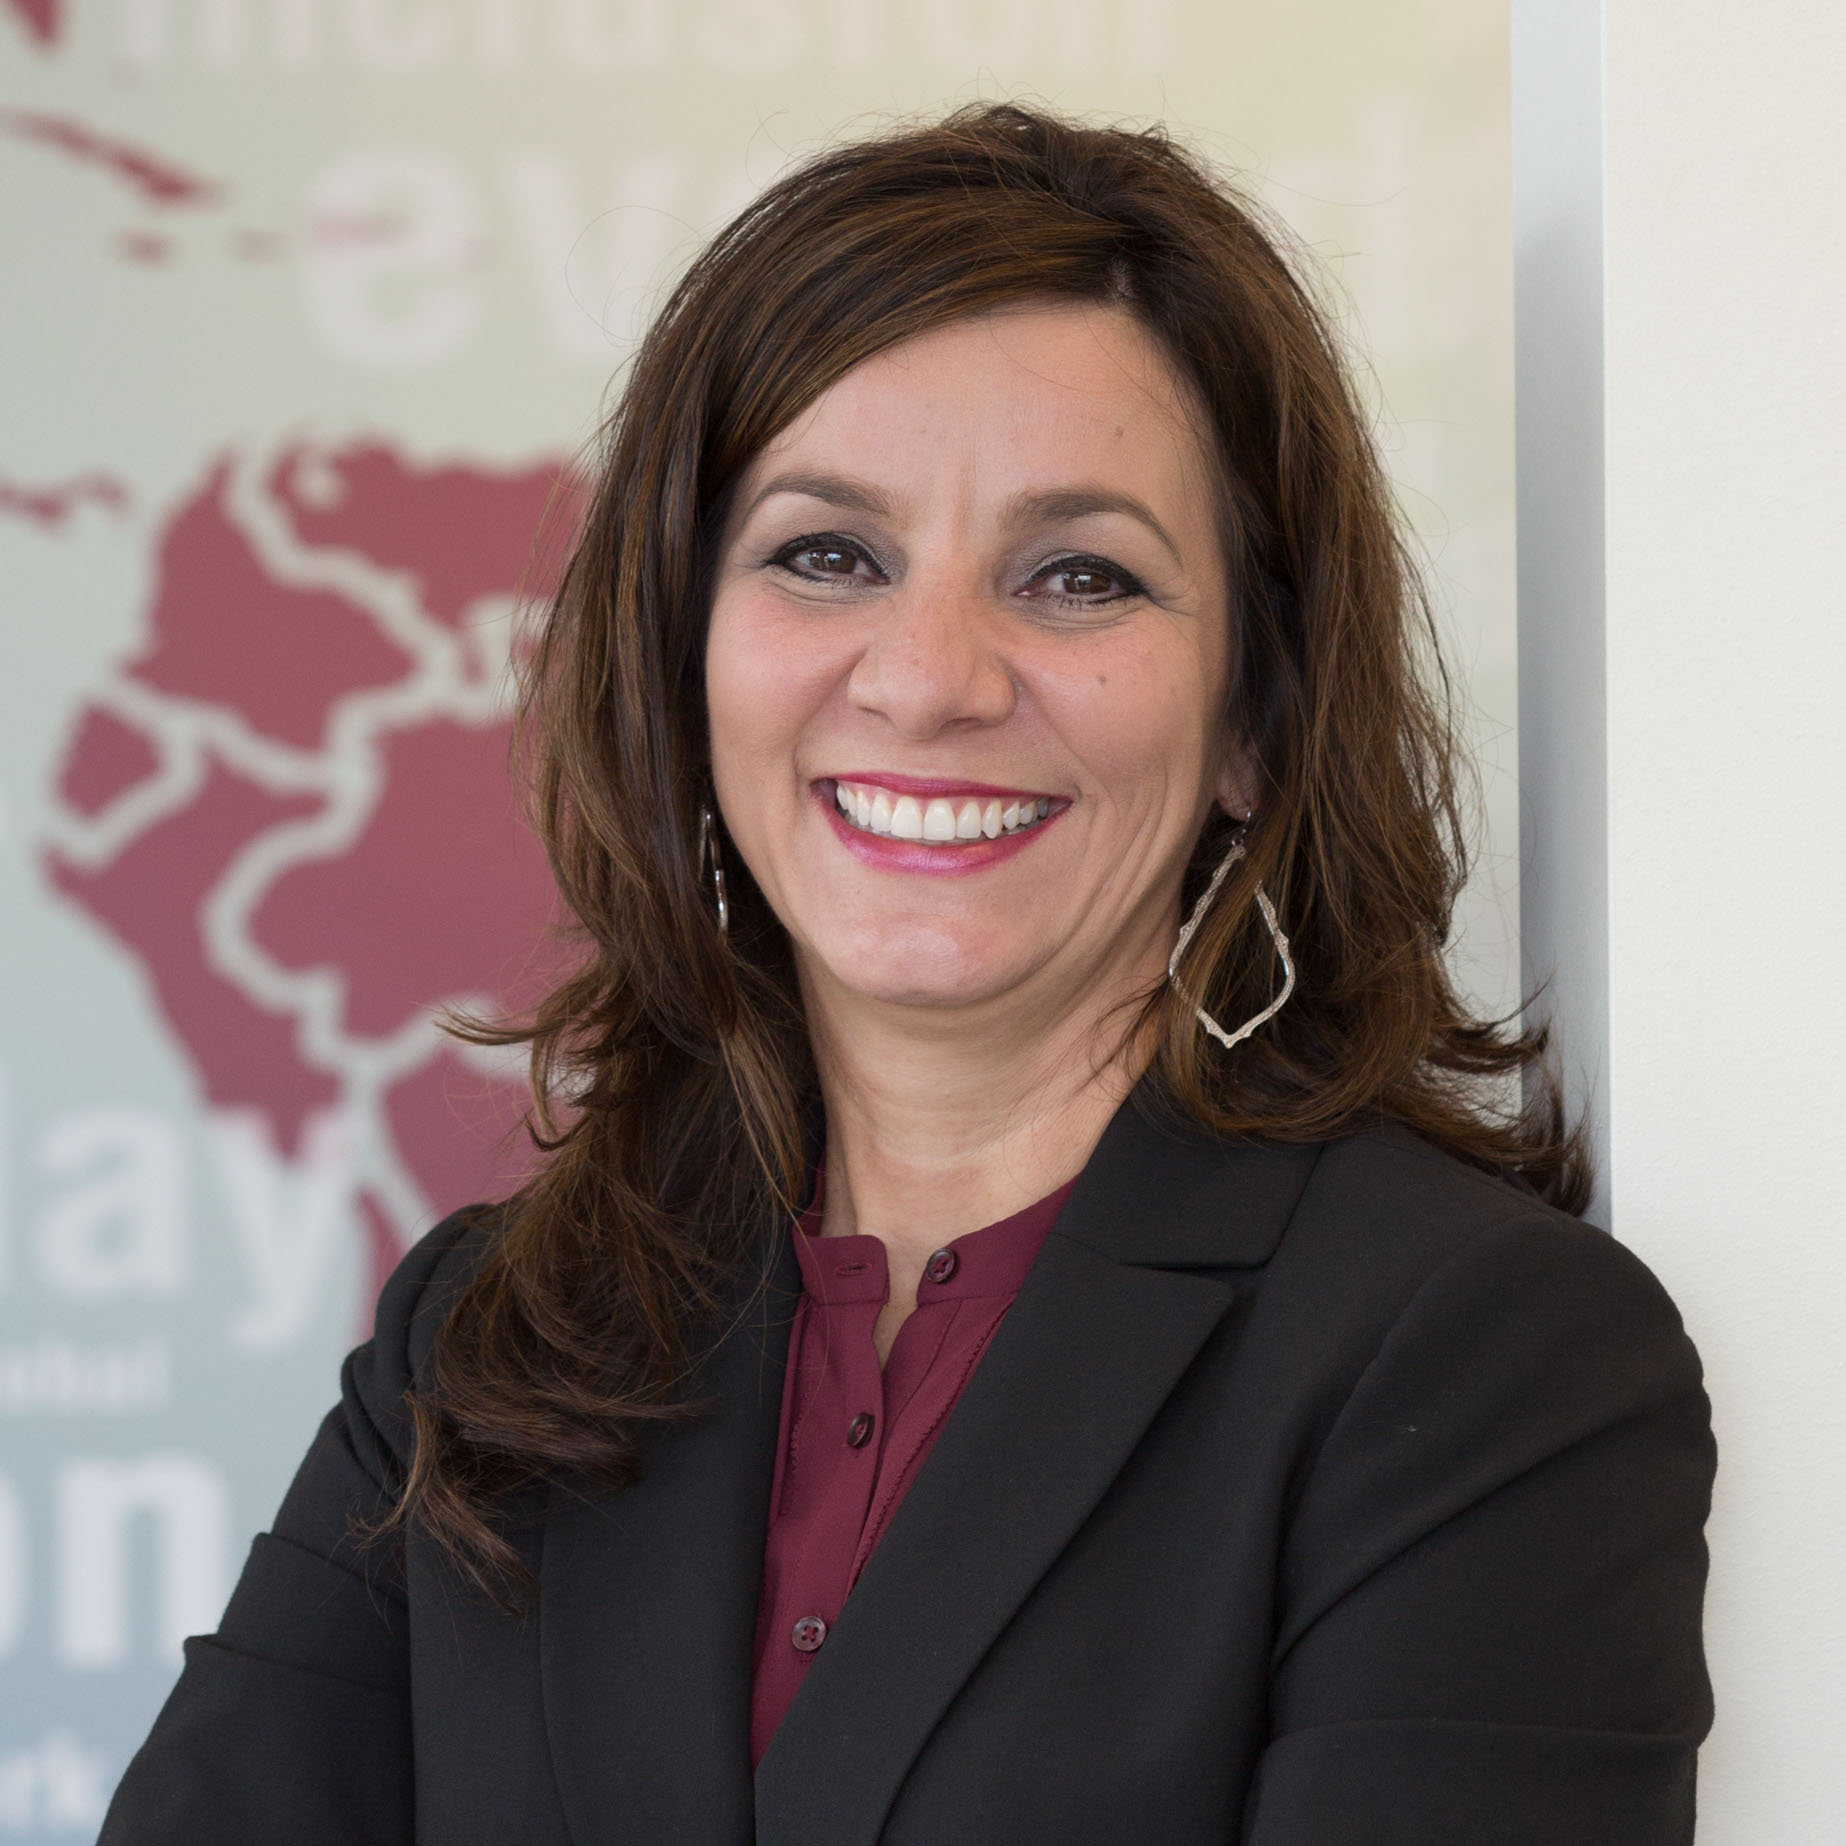 Chevron Phillips Chemical Announces that Maricela Caballero will Succeed Greg Wagner as Vice President of Human Resources